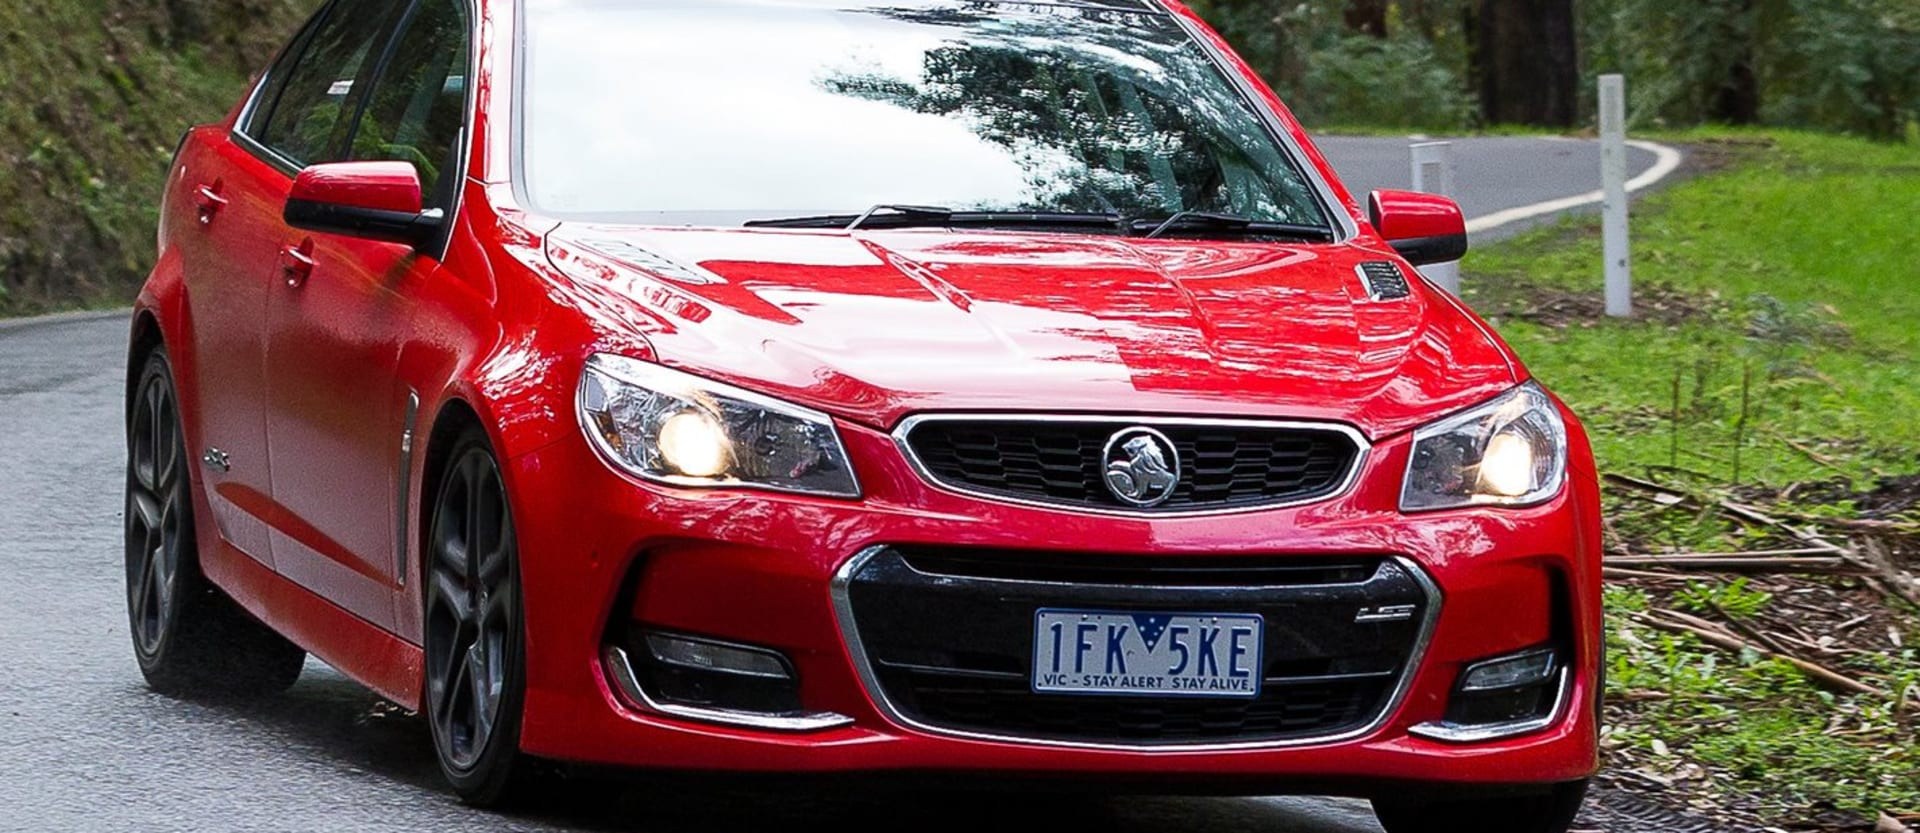 Holden Commodore VF II driving